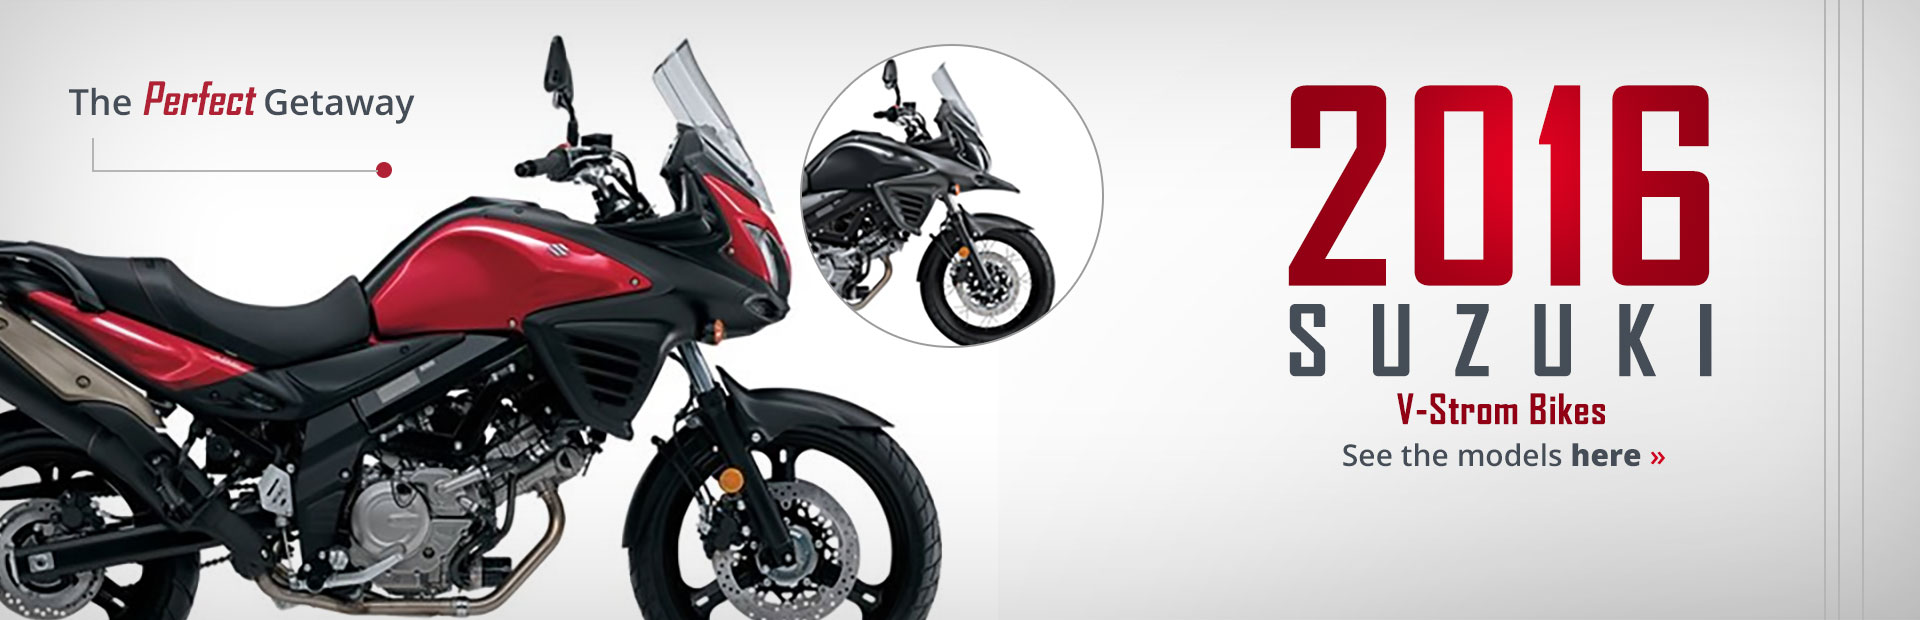 2016 Suzuki V-Strom Bikes: Click here to view the models.